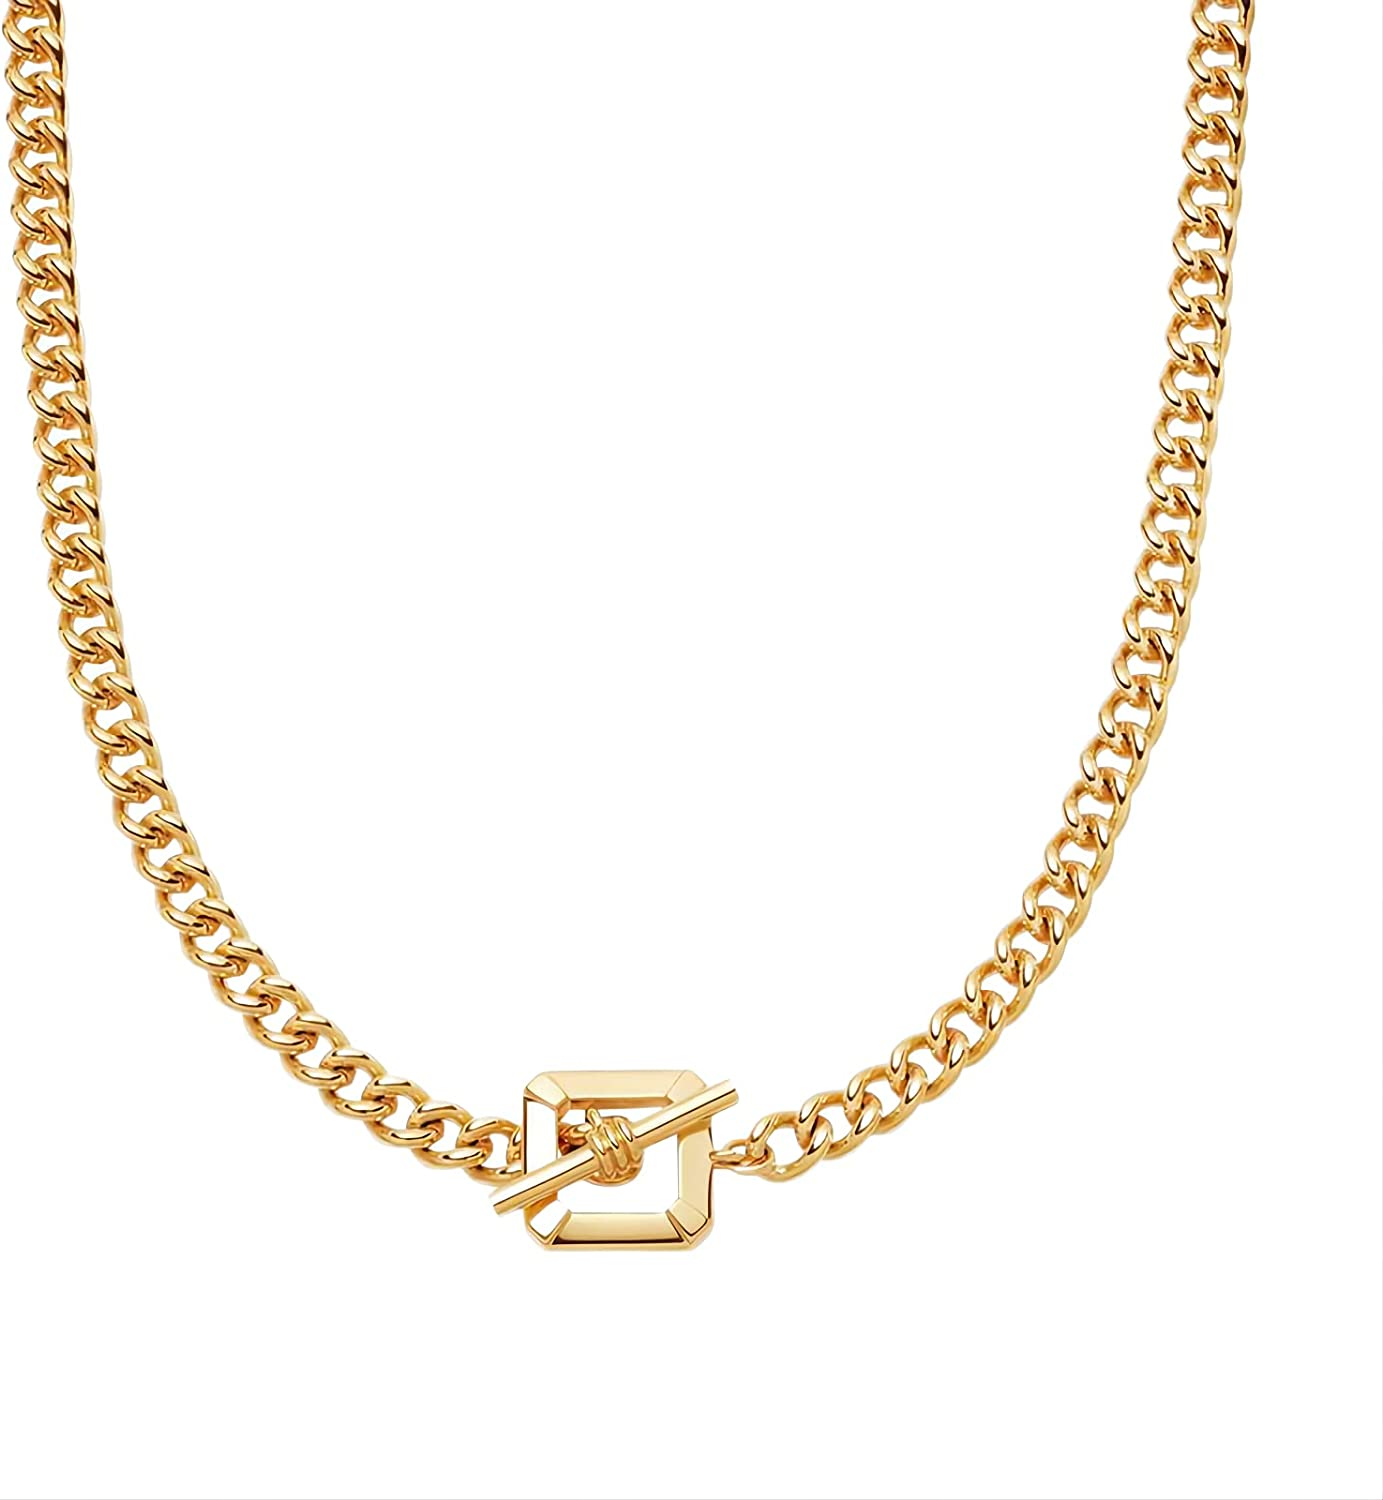 Cuban Chain Necklace For Women And Girls, 18K gold Plated Chunky Chain Necklace for Women And Girls 20 Inch, 6MM Cuban Curb Link Chain Necklace